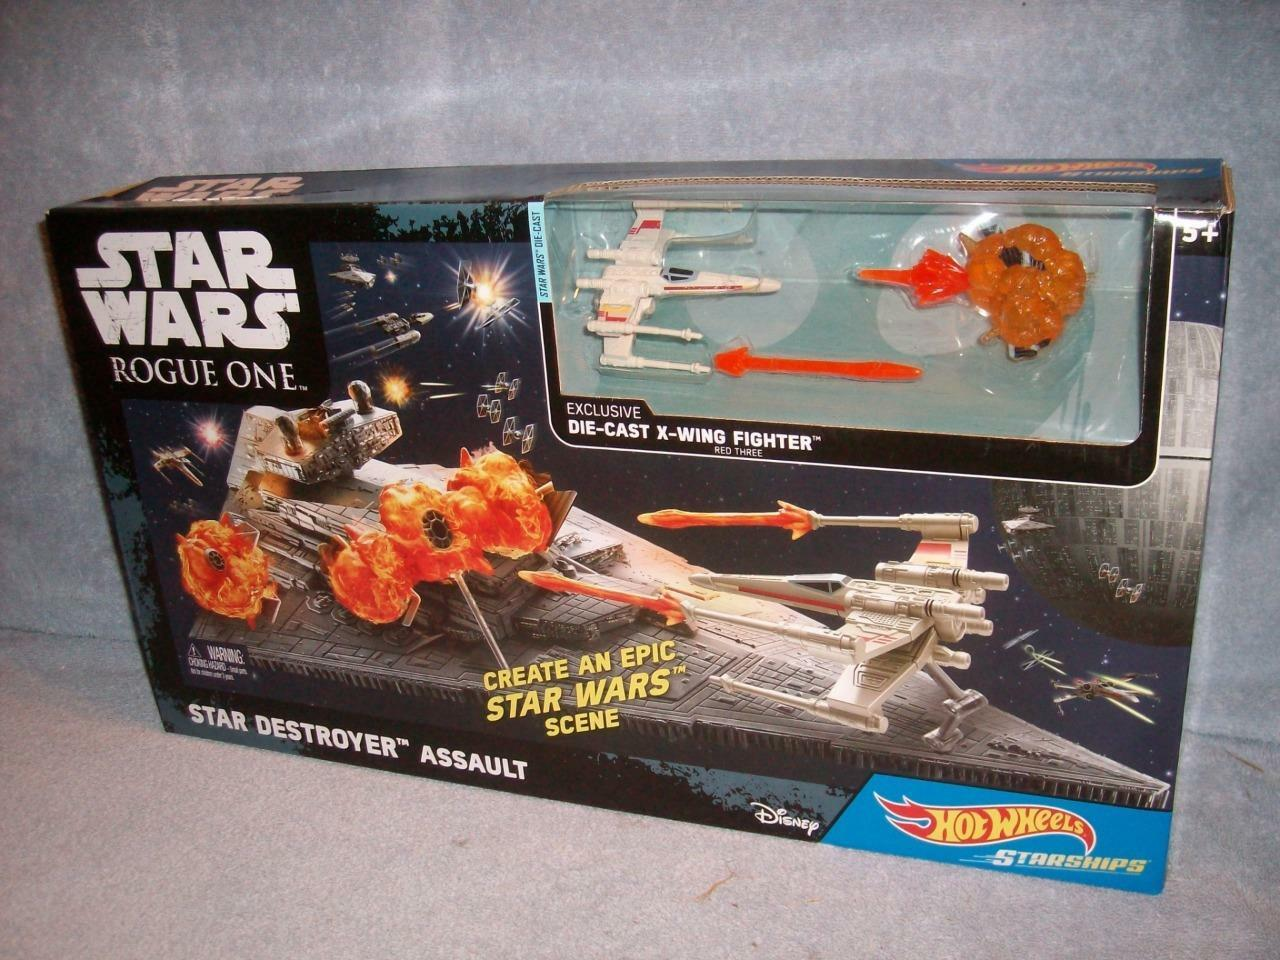 Destructor De Asalto Estrella Wars Estrella Rogue un Hot Wheels naves X-Wing 2016 Nuevo